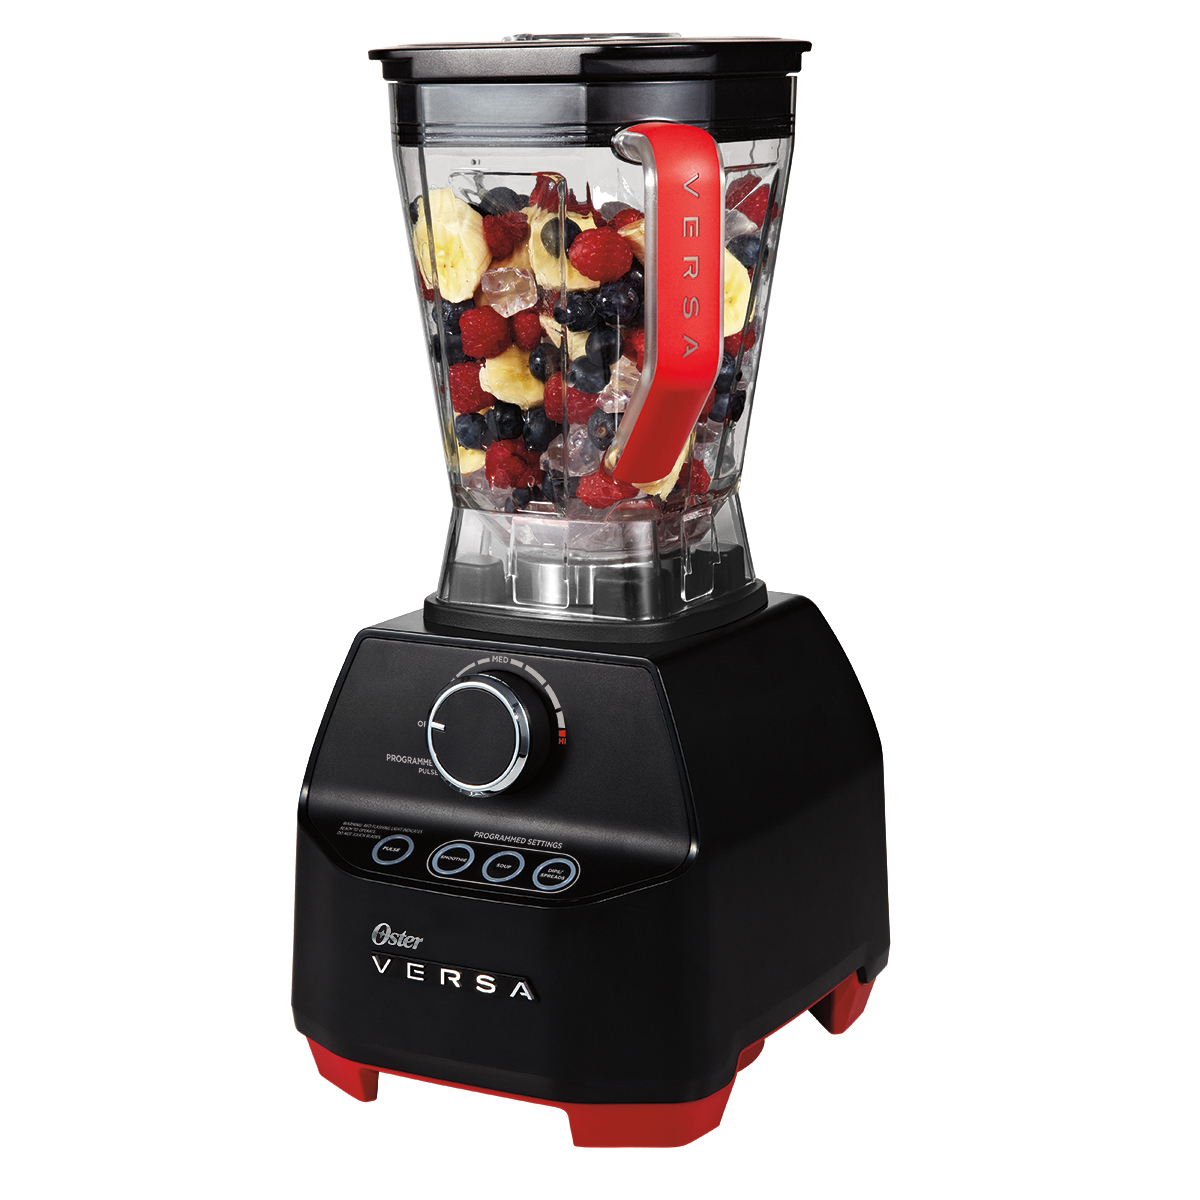 Oster Versa Pro Performance Variable Speed Black Blender with Tamper, 1 Each